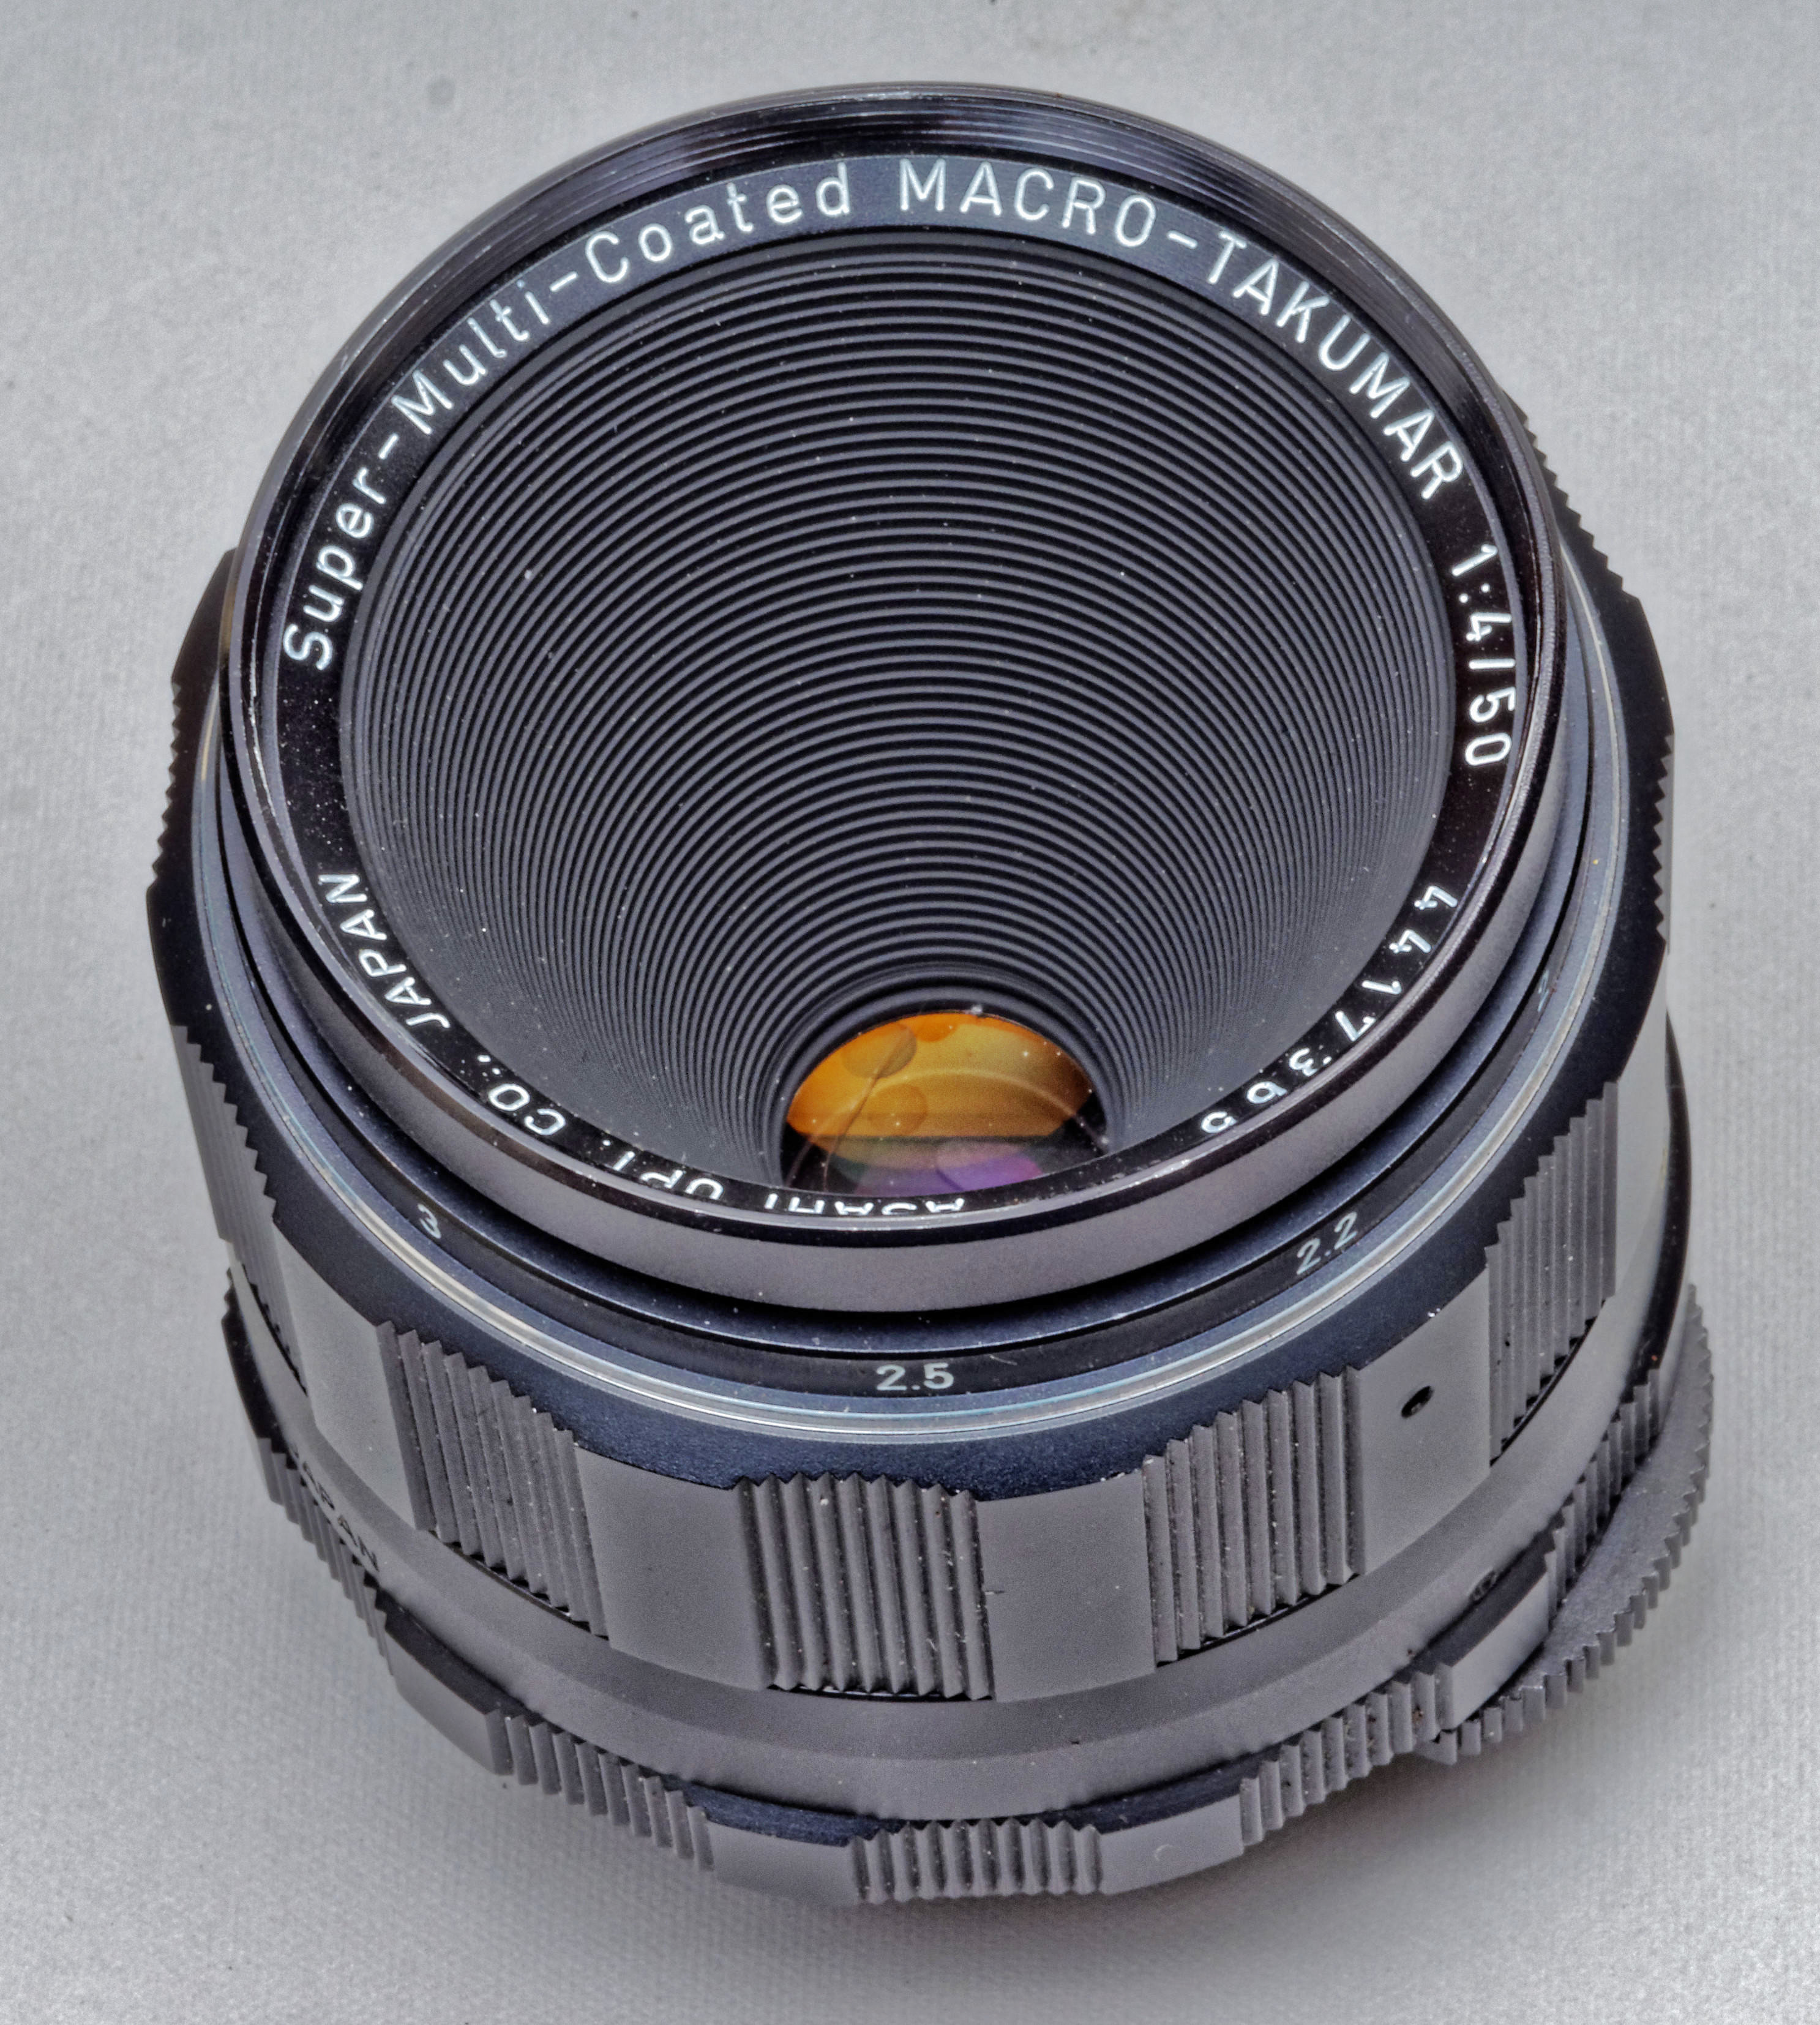 This should be SMC-Takumar-50-4-1.jpeg.  Is it missing?